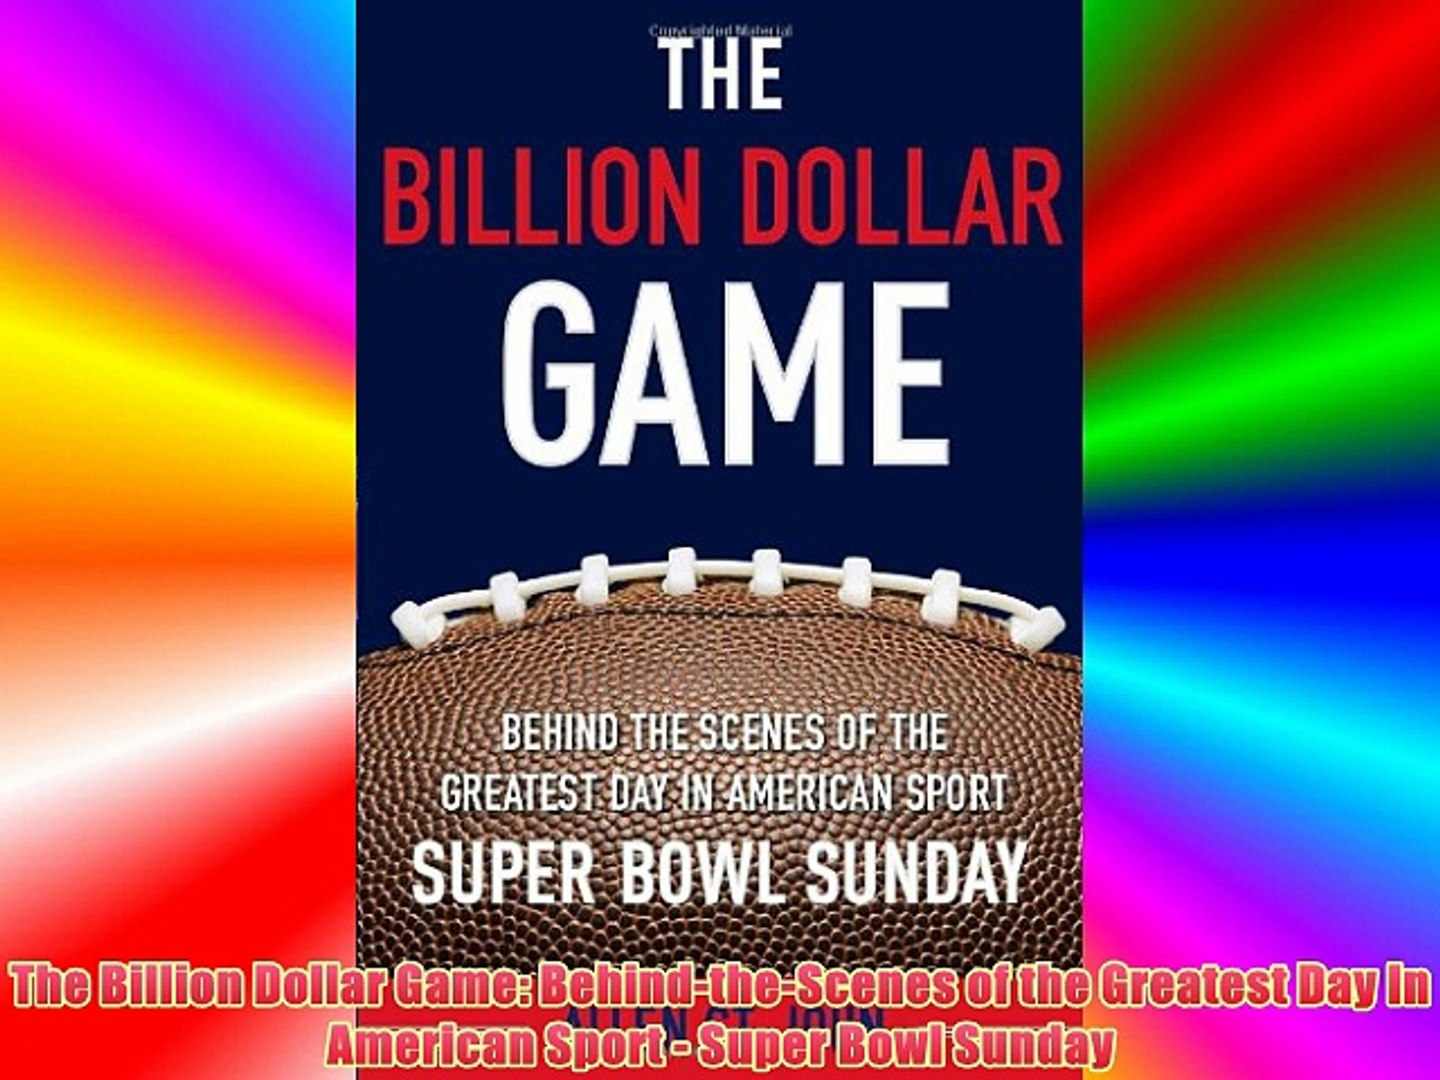 The Billion Dollar Game: Behind-the-Scenes of the Greatest Day In American Sport - Super Bowl